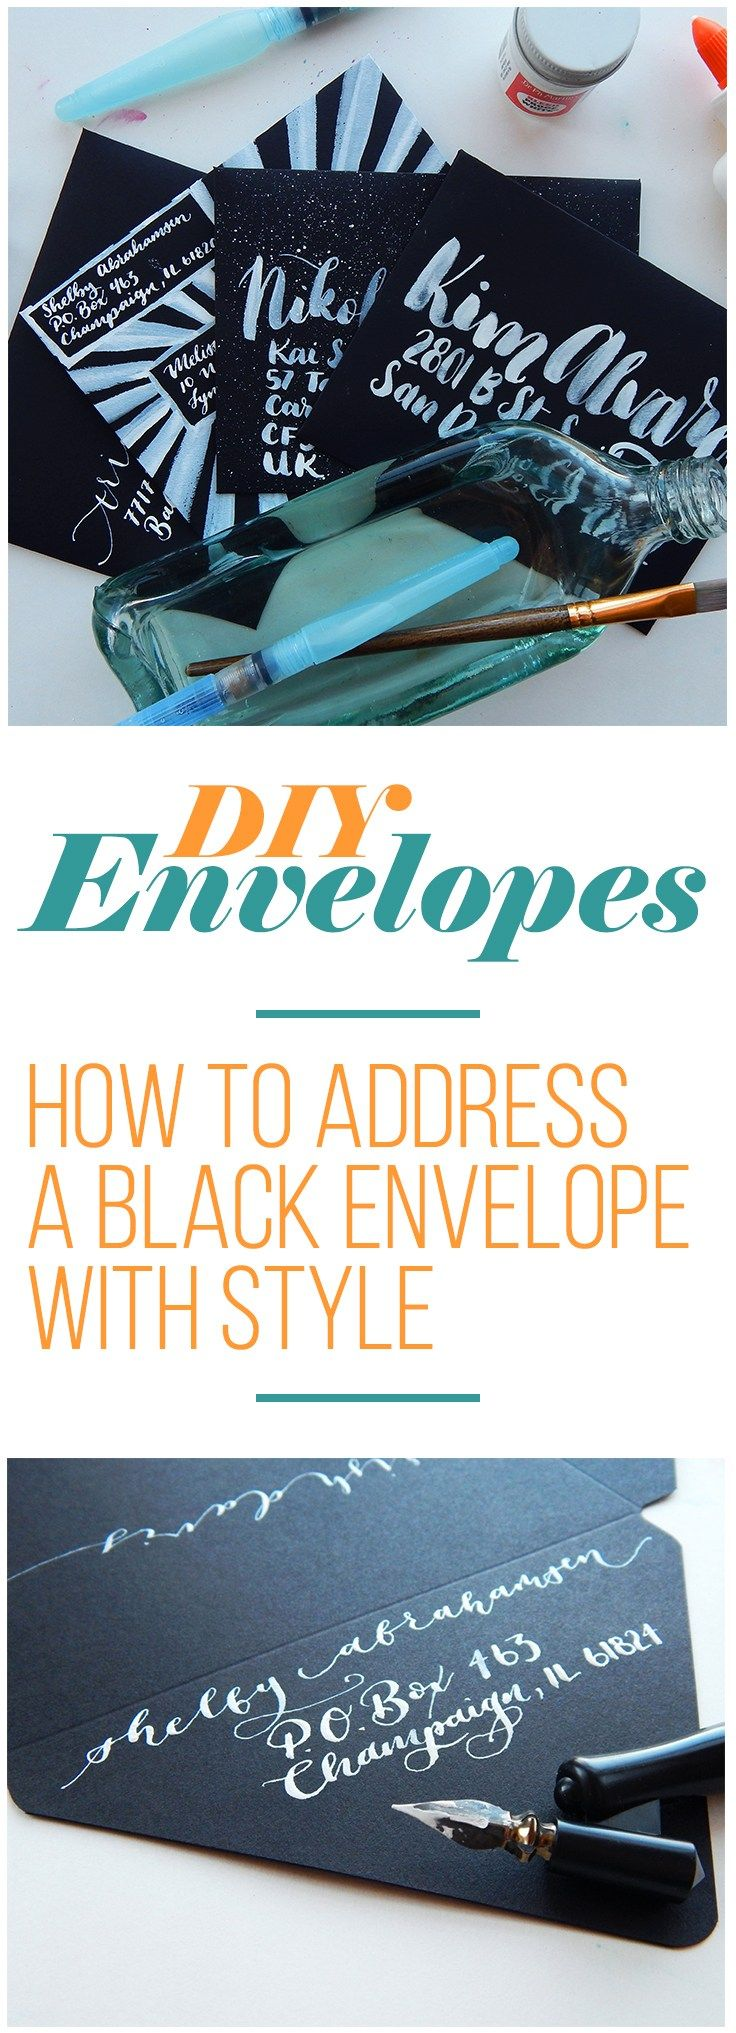 Diy Envelopes  How To Address A Black Envelope With Style